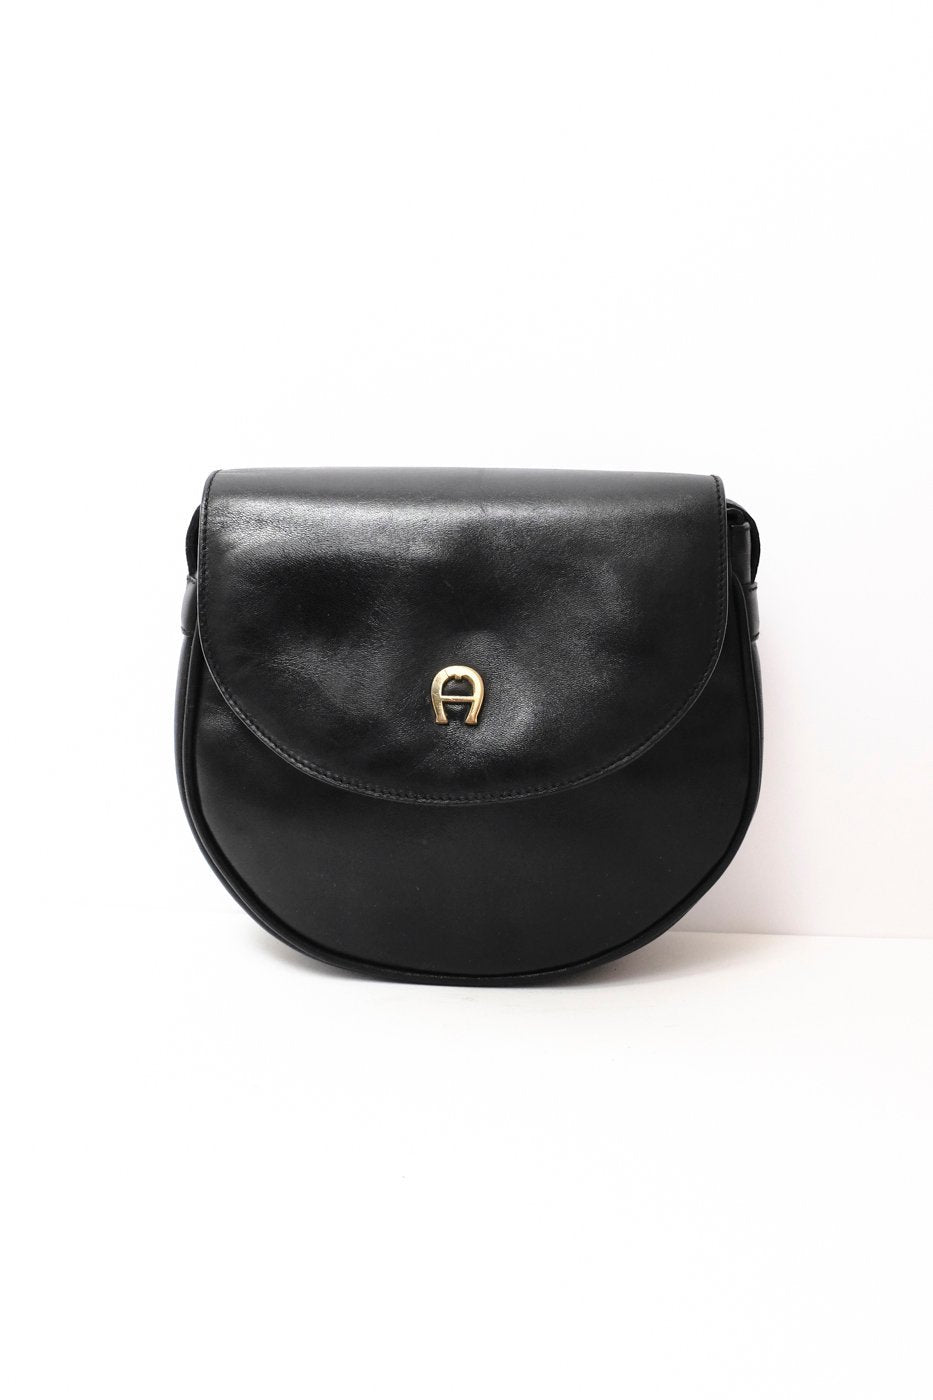 0300_AIGNER BLACK HALF MOON BAG